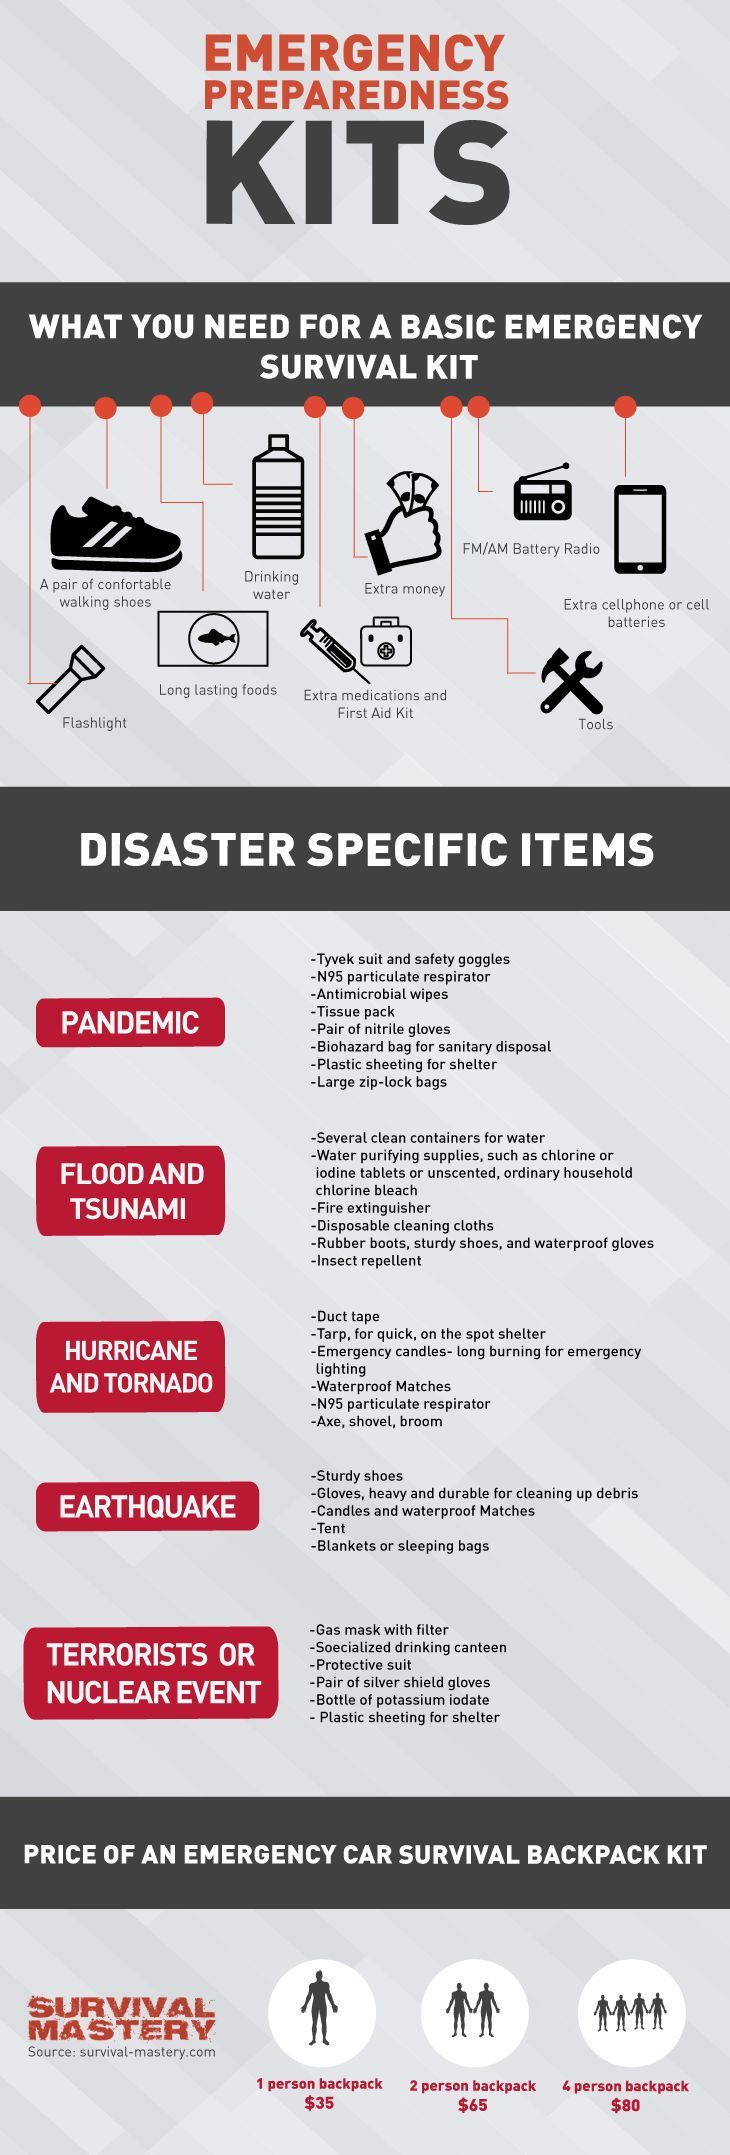 Basic emergency survival kit items infographic